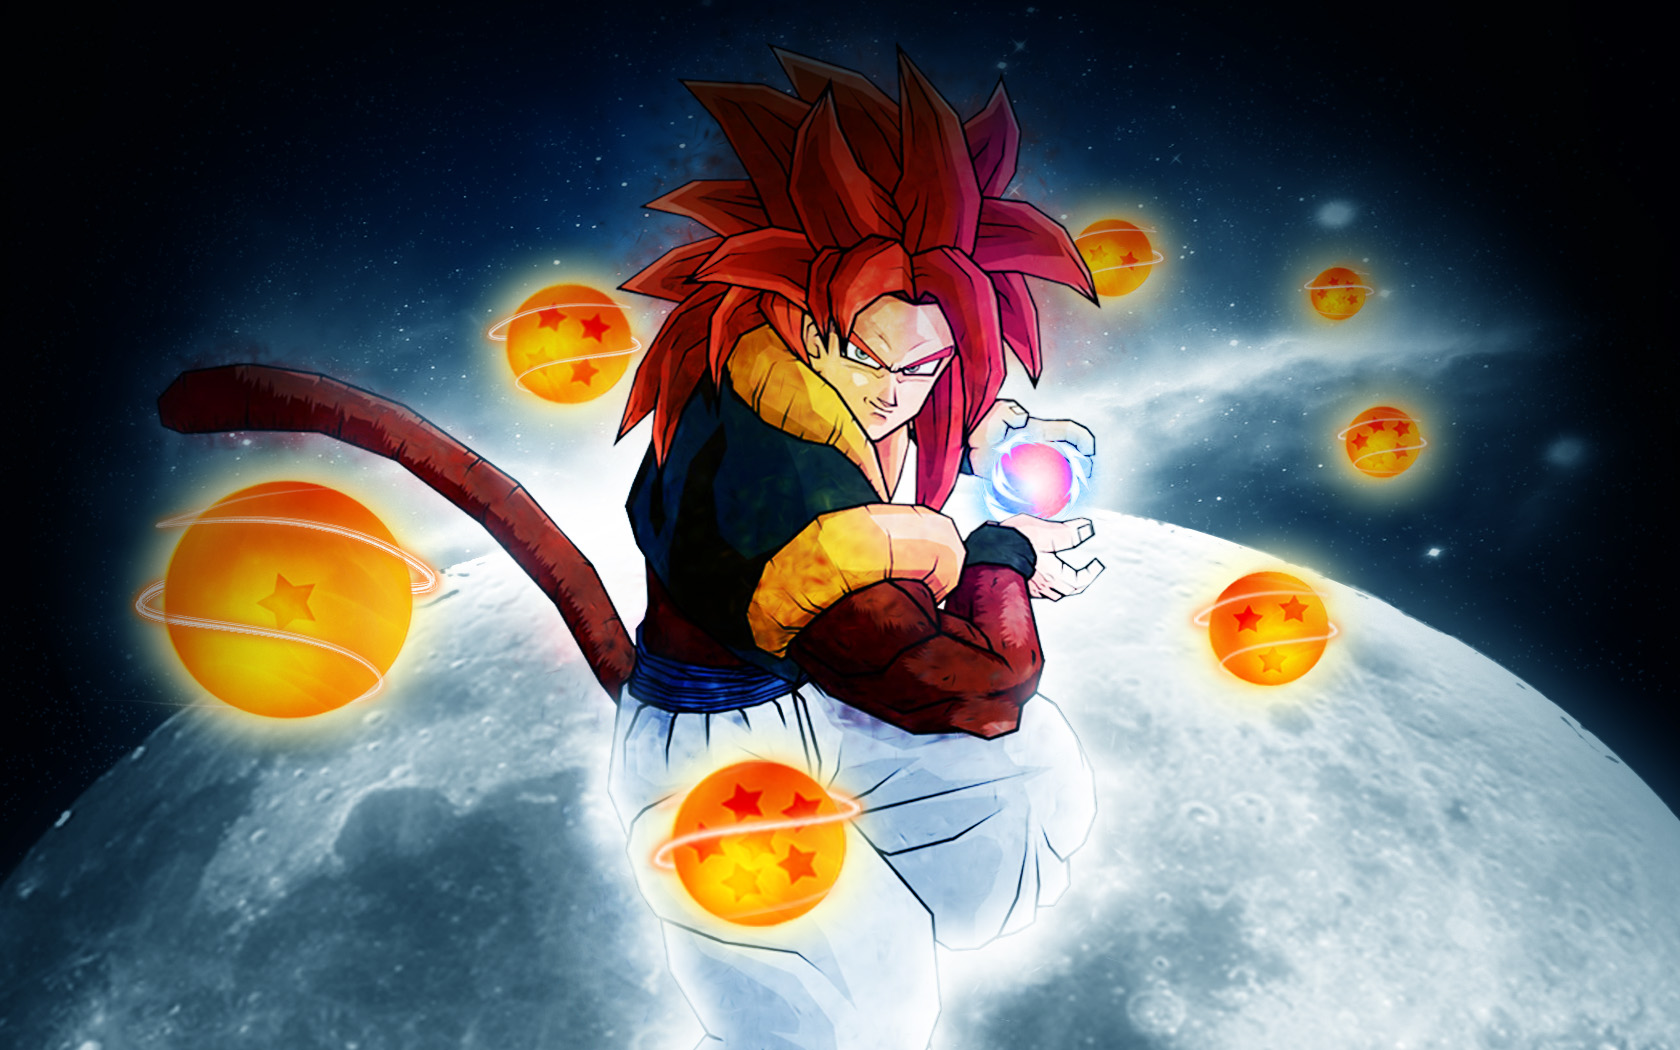 49 dragon ball super wallpaper hd on wallpapersafari - 3d wallpaper of dragon ball z ...